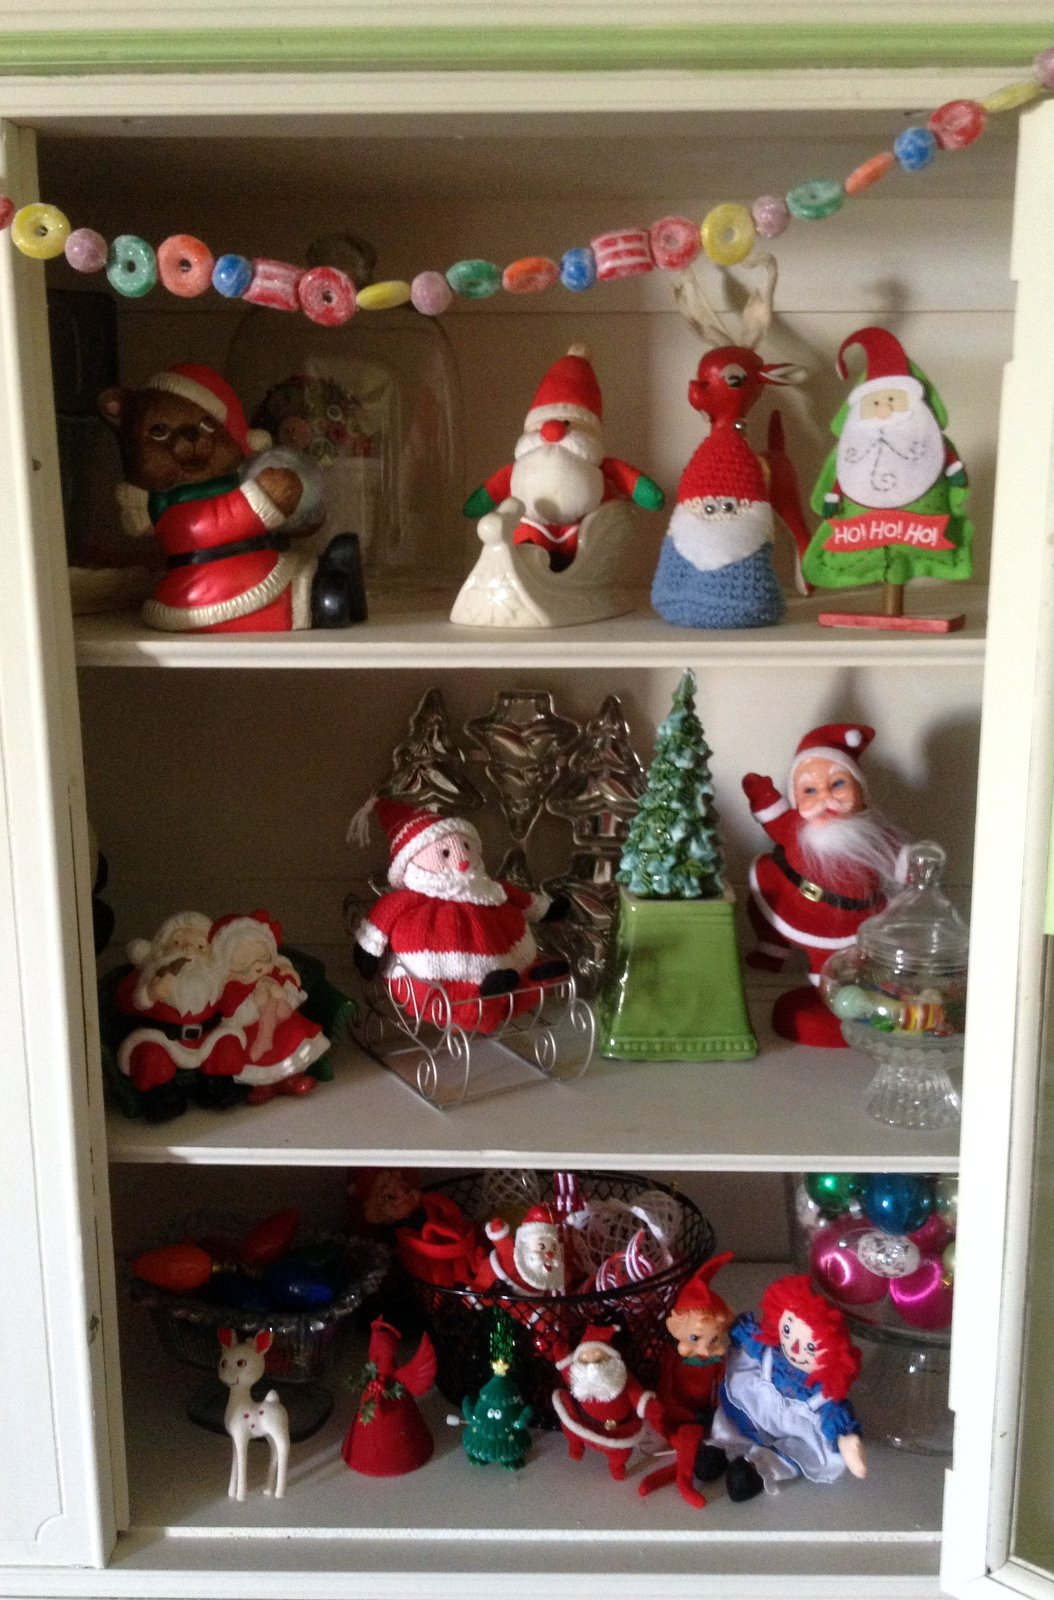 Quilted Cupcake: December 2012 - Christmasdecorations On Cupboard Top